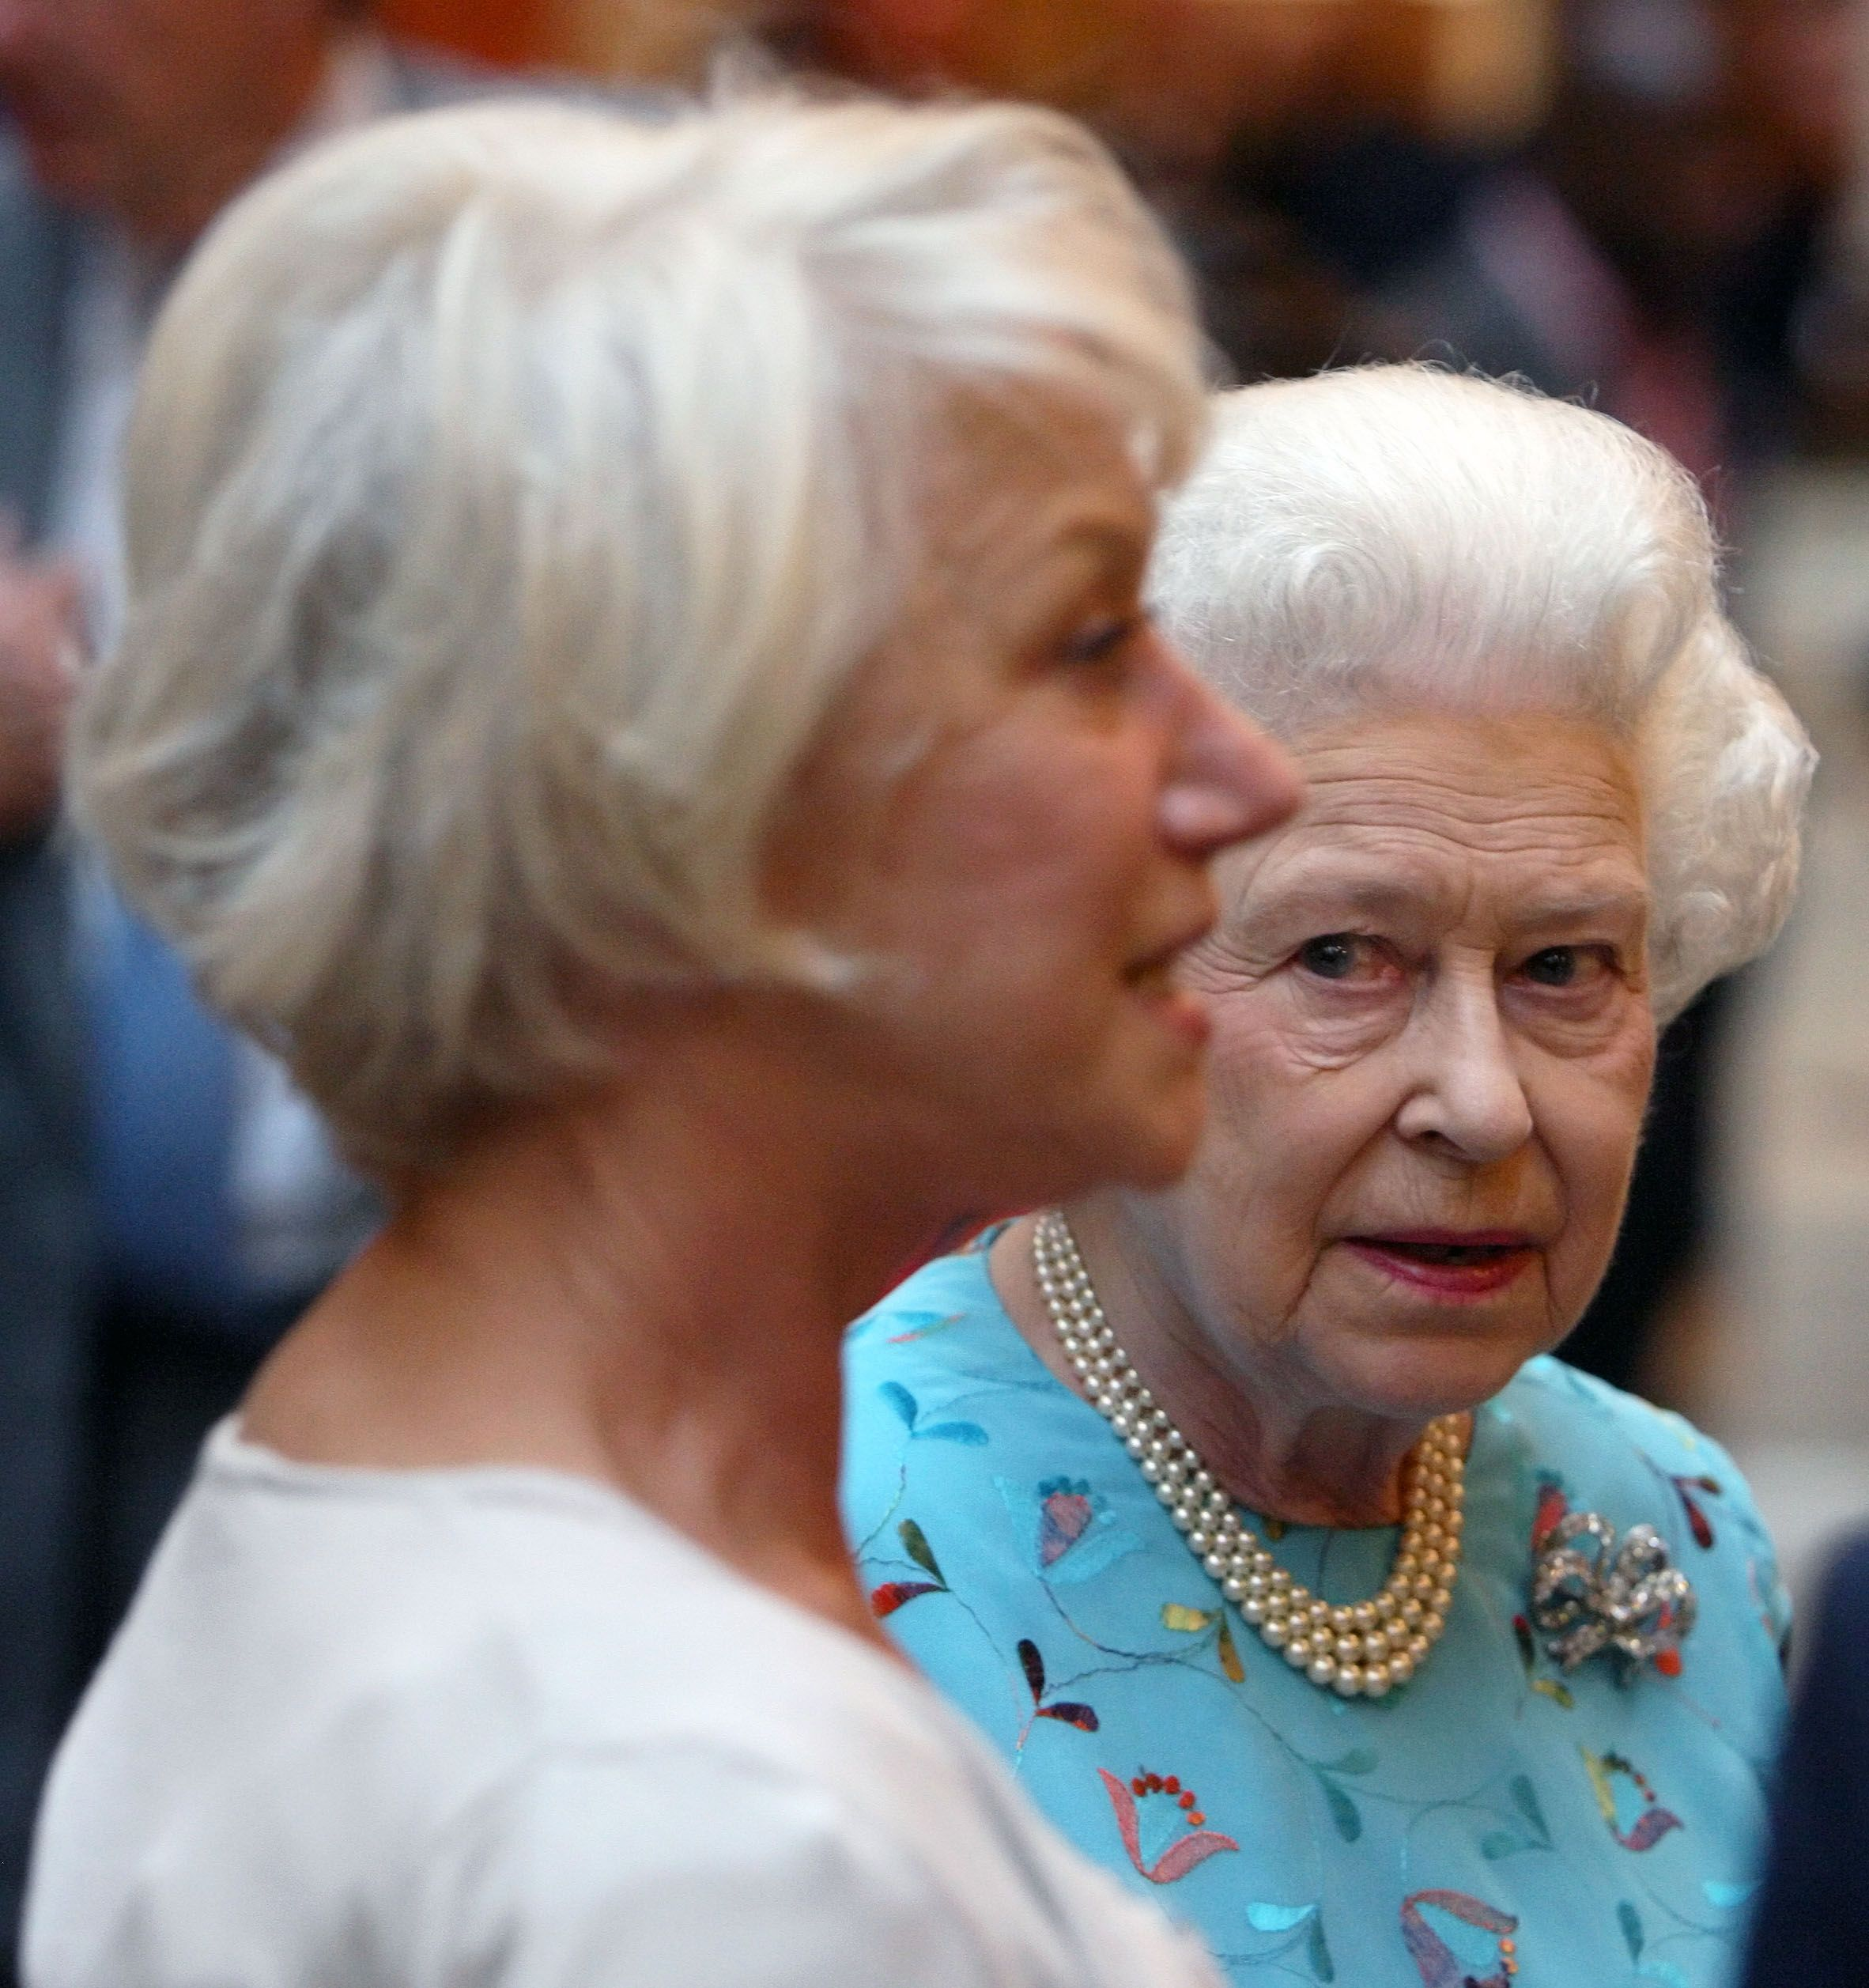 Helen Mirren Was Mortified When She Forgot Royal Etiquette During Tea with the Queen